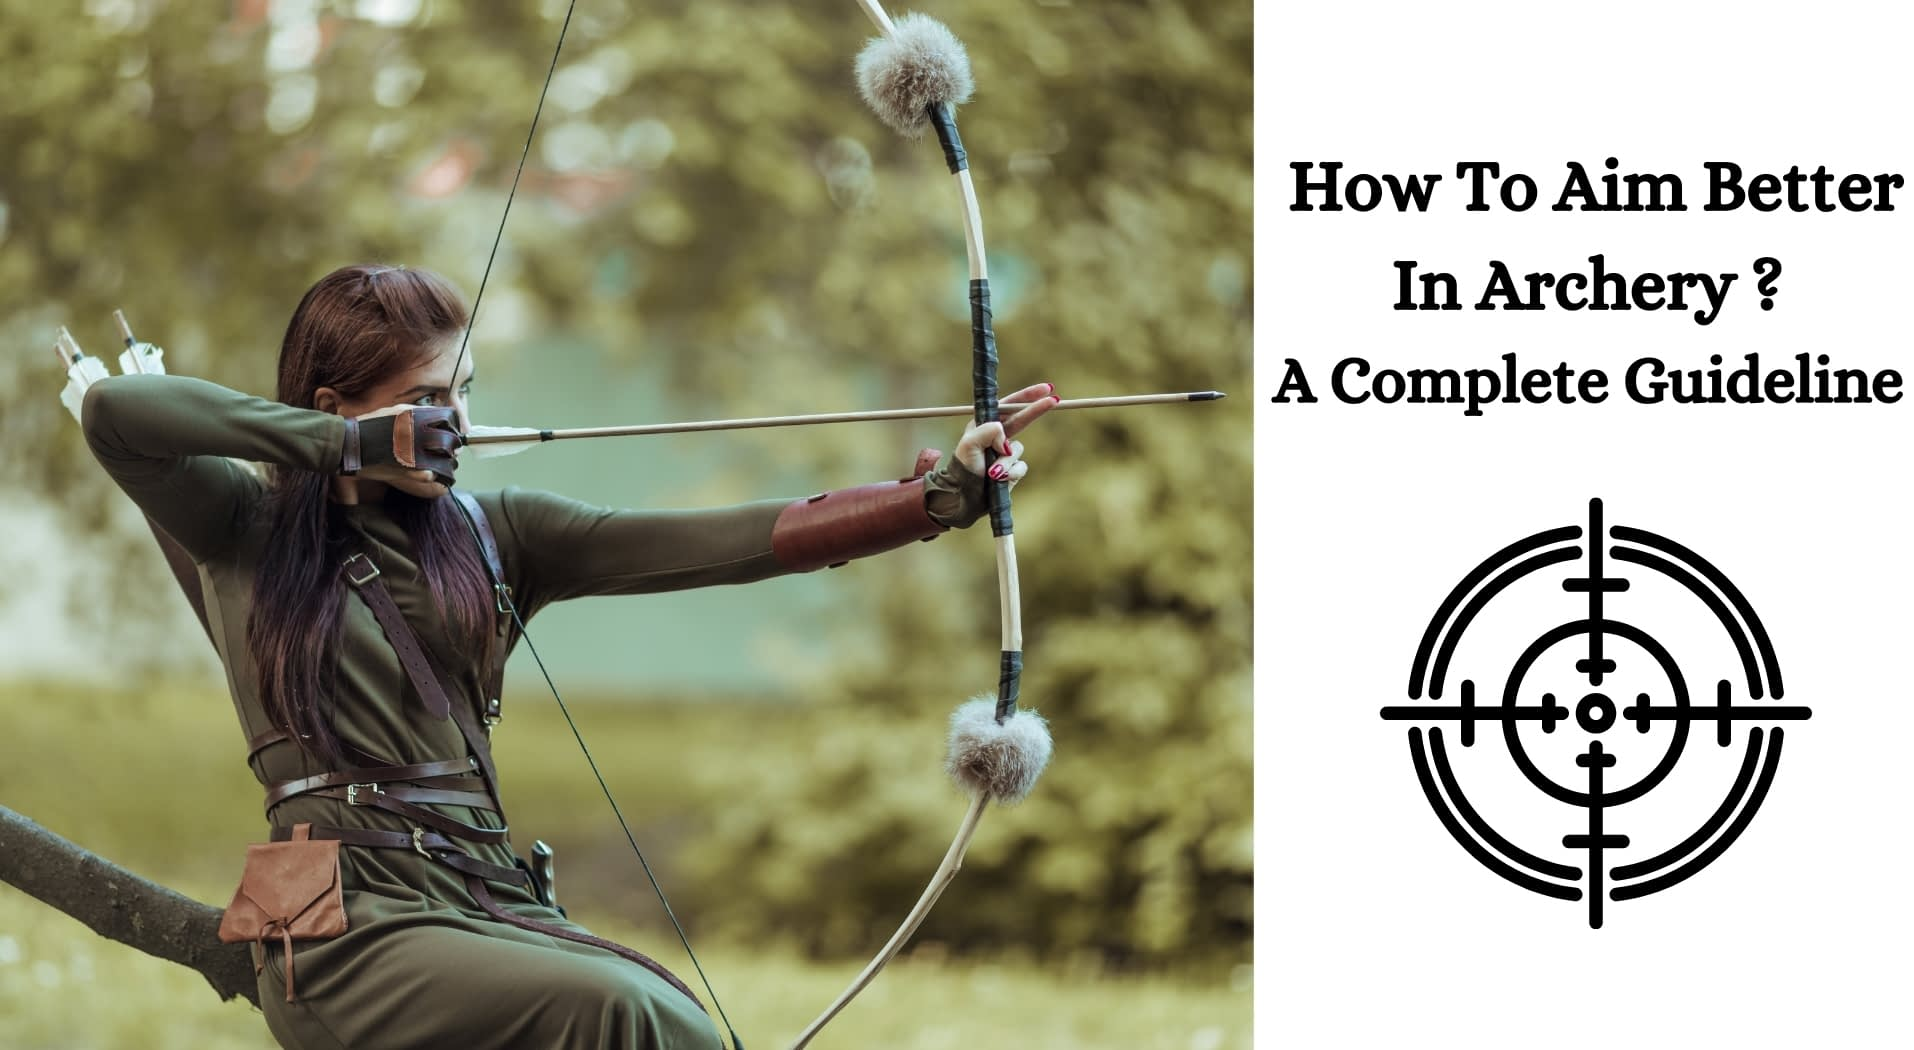 How To Aim Better In Archery? A Complete Guideline